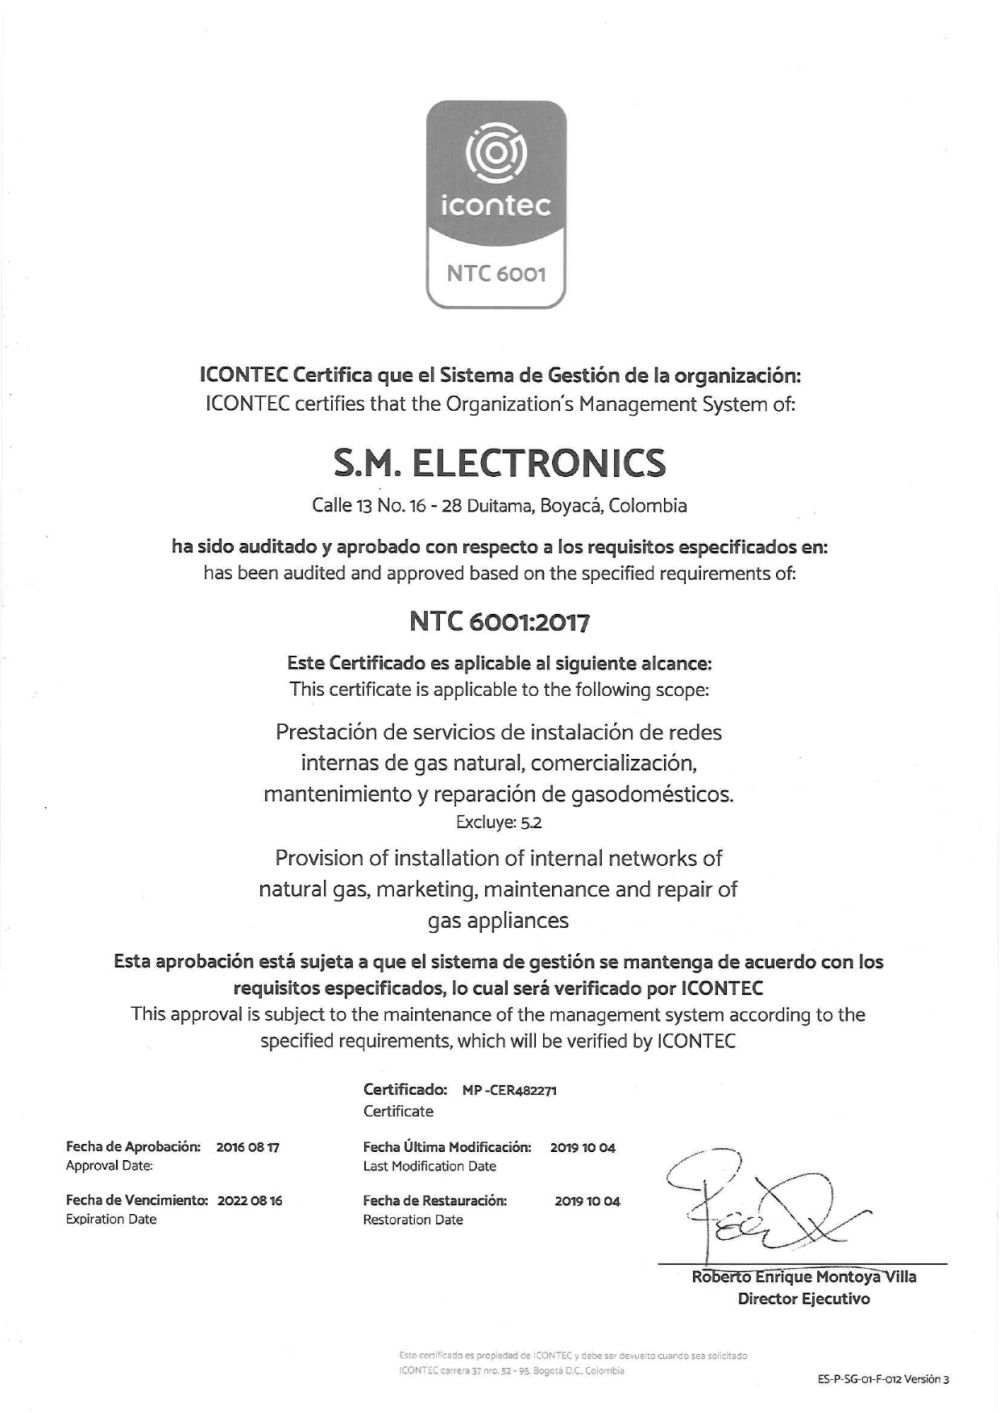 https://smelectronics.co/wp-content/uploads/2020/04/S.M.-ELECTRONICS-6001-CERTIFICADO_pages-to-jpg-0001.jpg